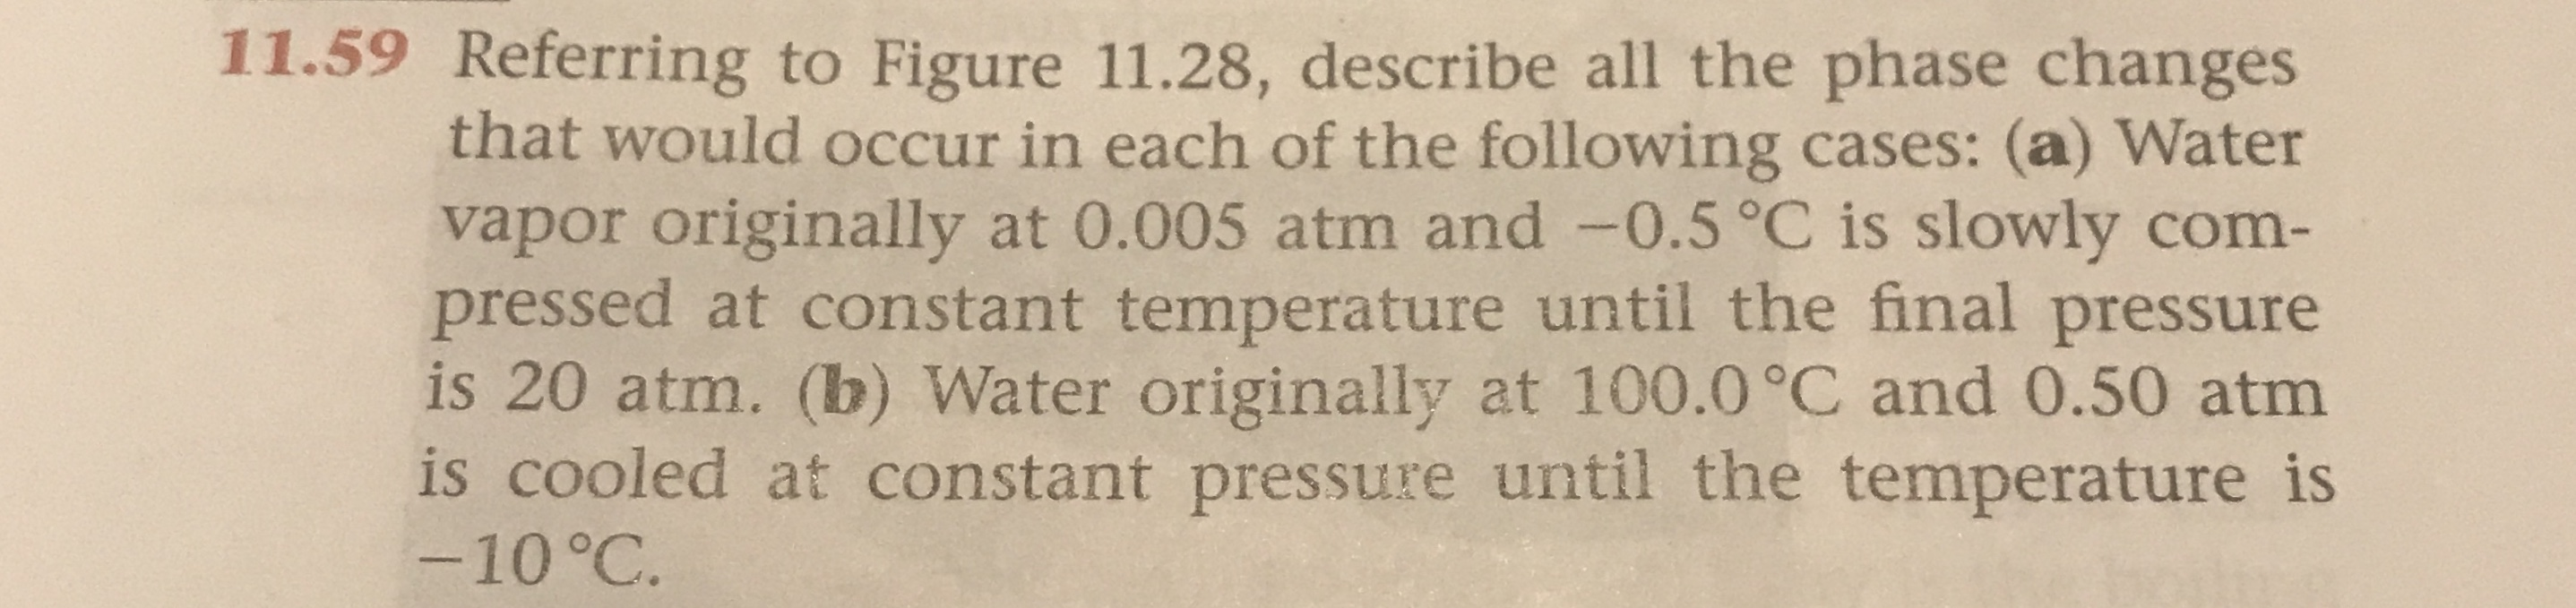 11.59 Referring to Figure 11.28, describe all the phase changes that would occur in each of the following cases: (a) Water vapor originally at 0.005 atm and -0.5°C is slowly com- pressed at constant temperature until the final pressure is 20 atm. (b) Water originally at 100.0 °C and 0.50 atm is cooled at constant pressure until the temperature is -10 °C.